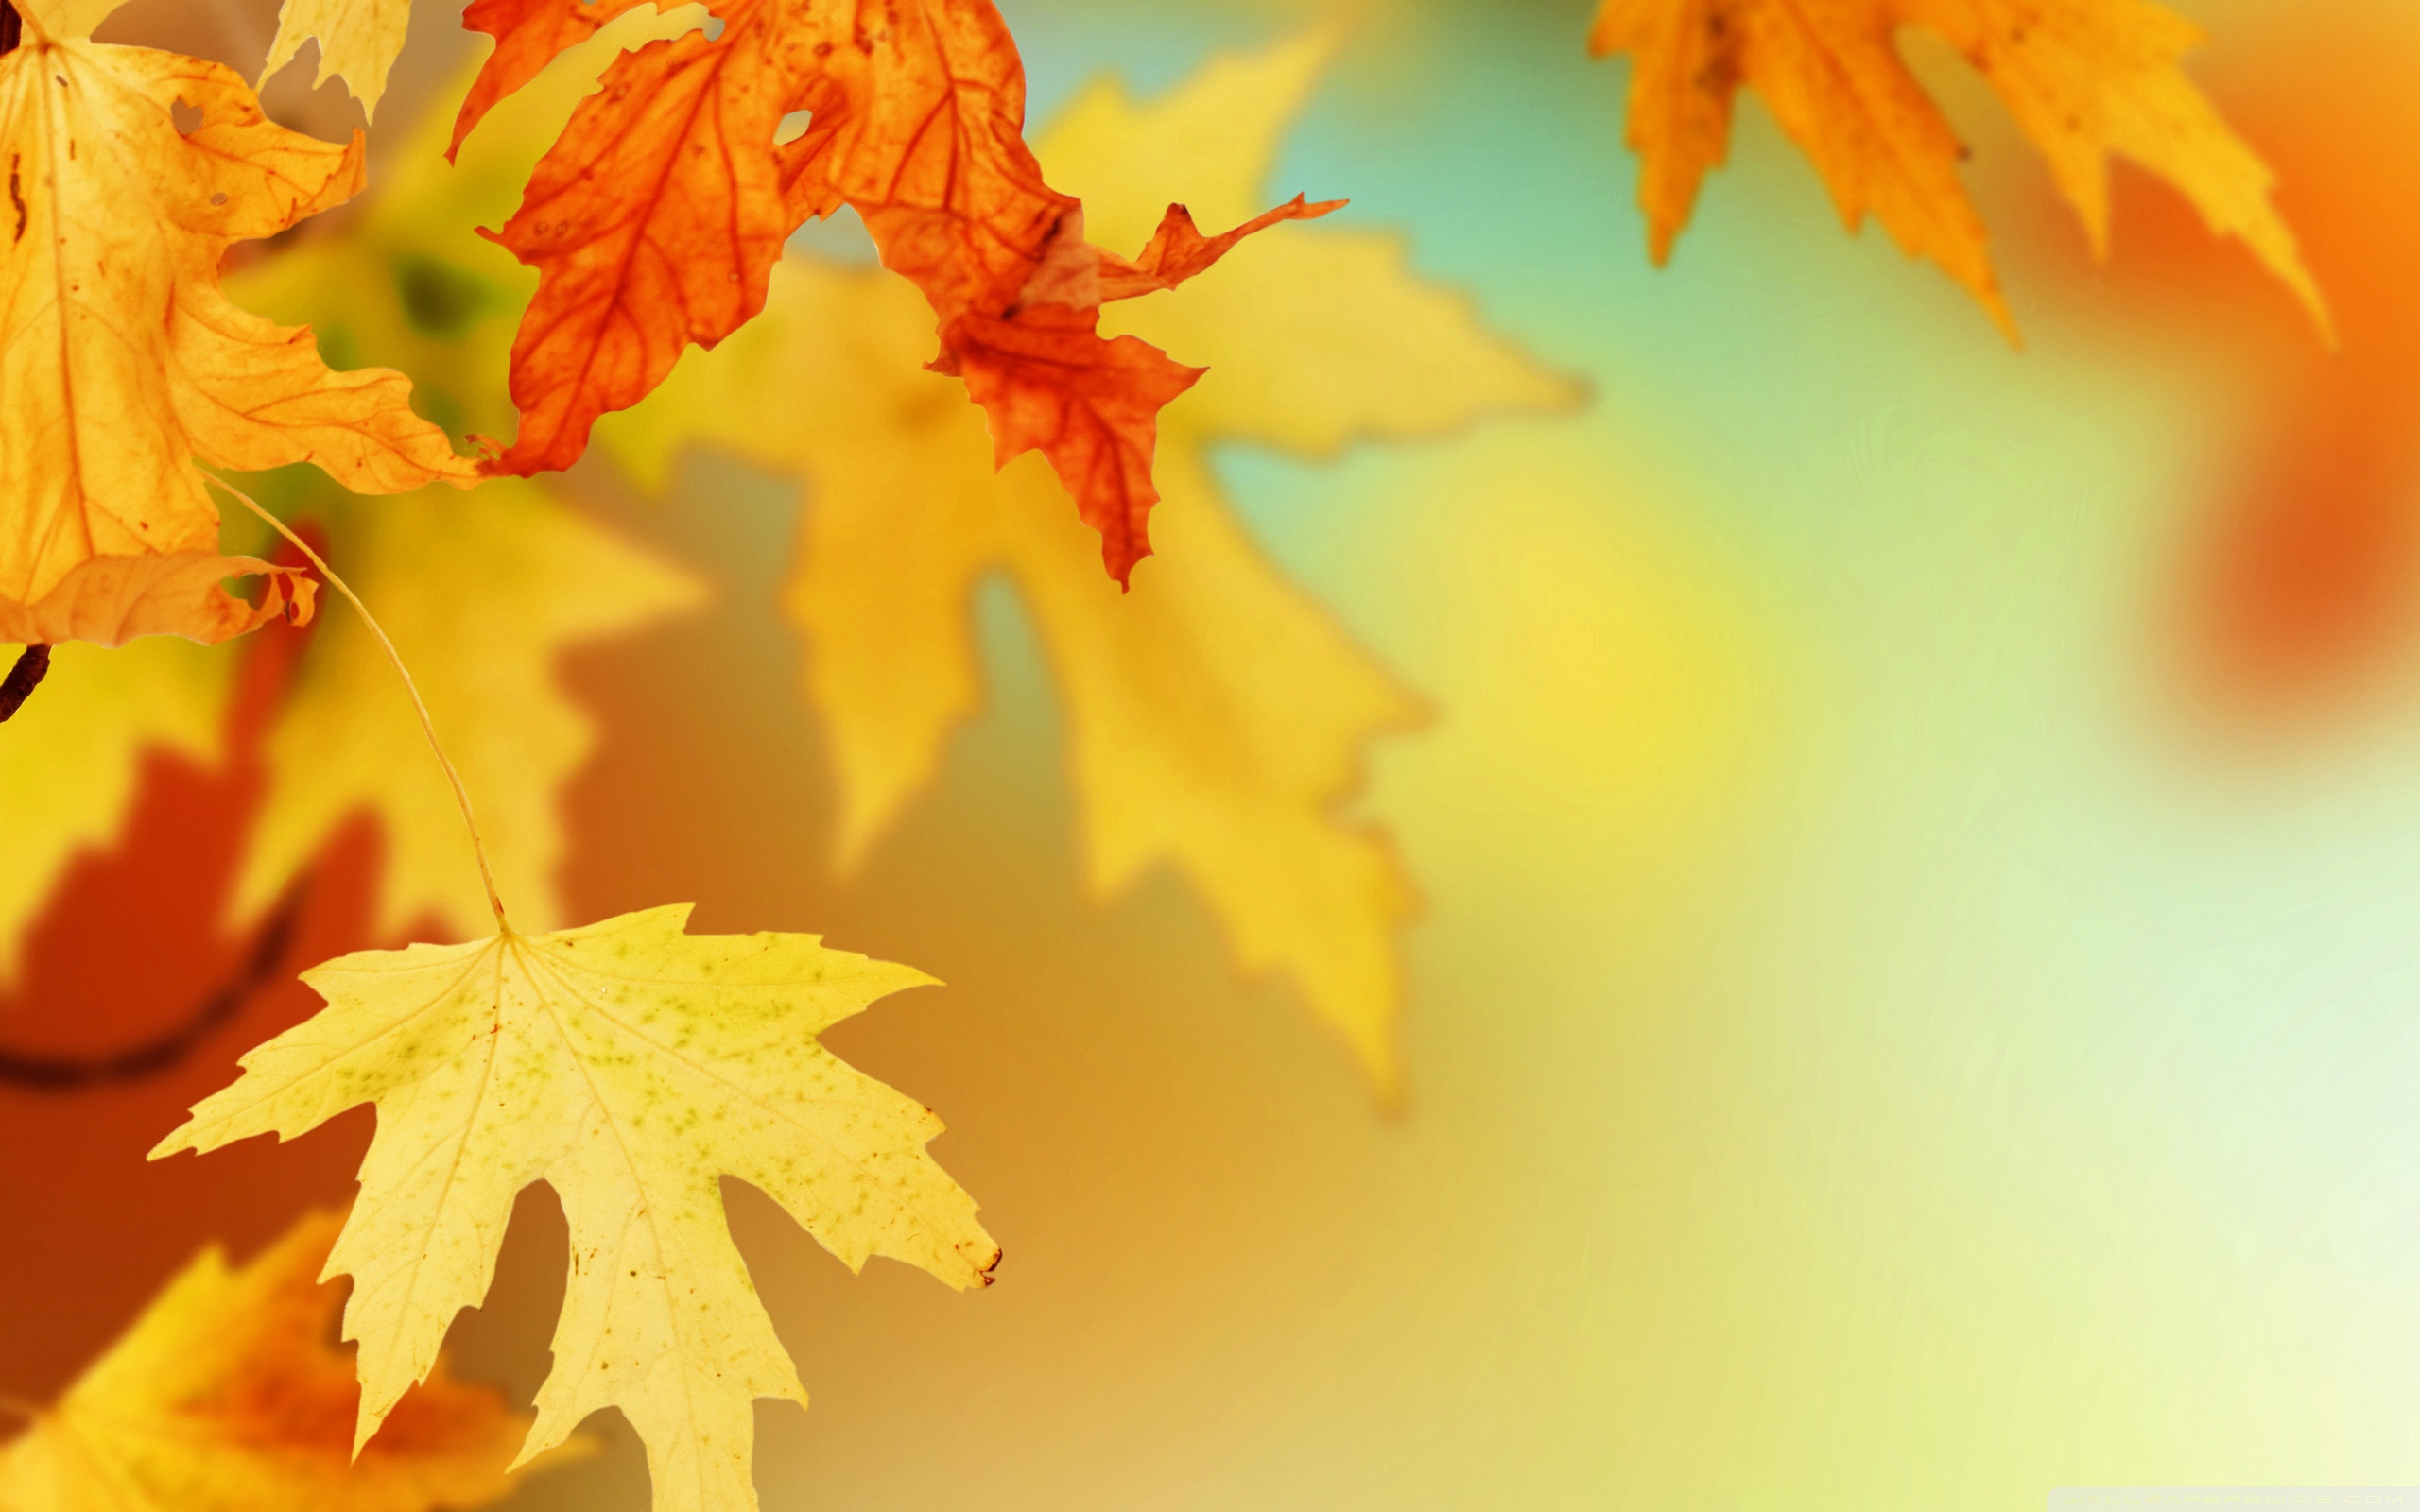 Autumn leaves photos wallpaper high definition high quality autumn leaves photos voltagebd Image collections